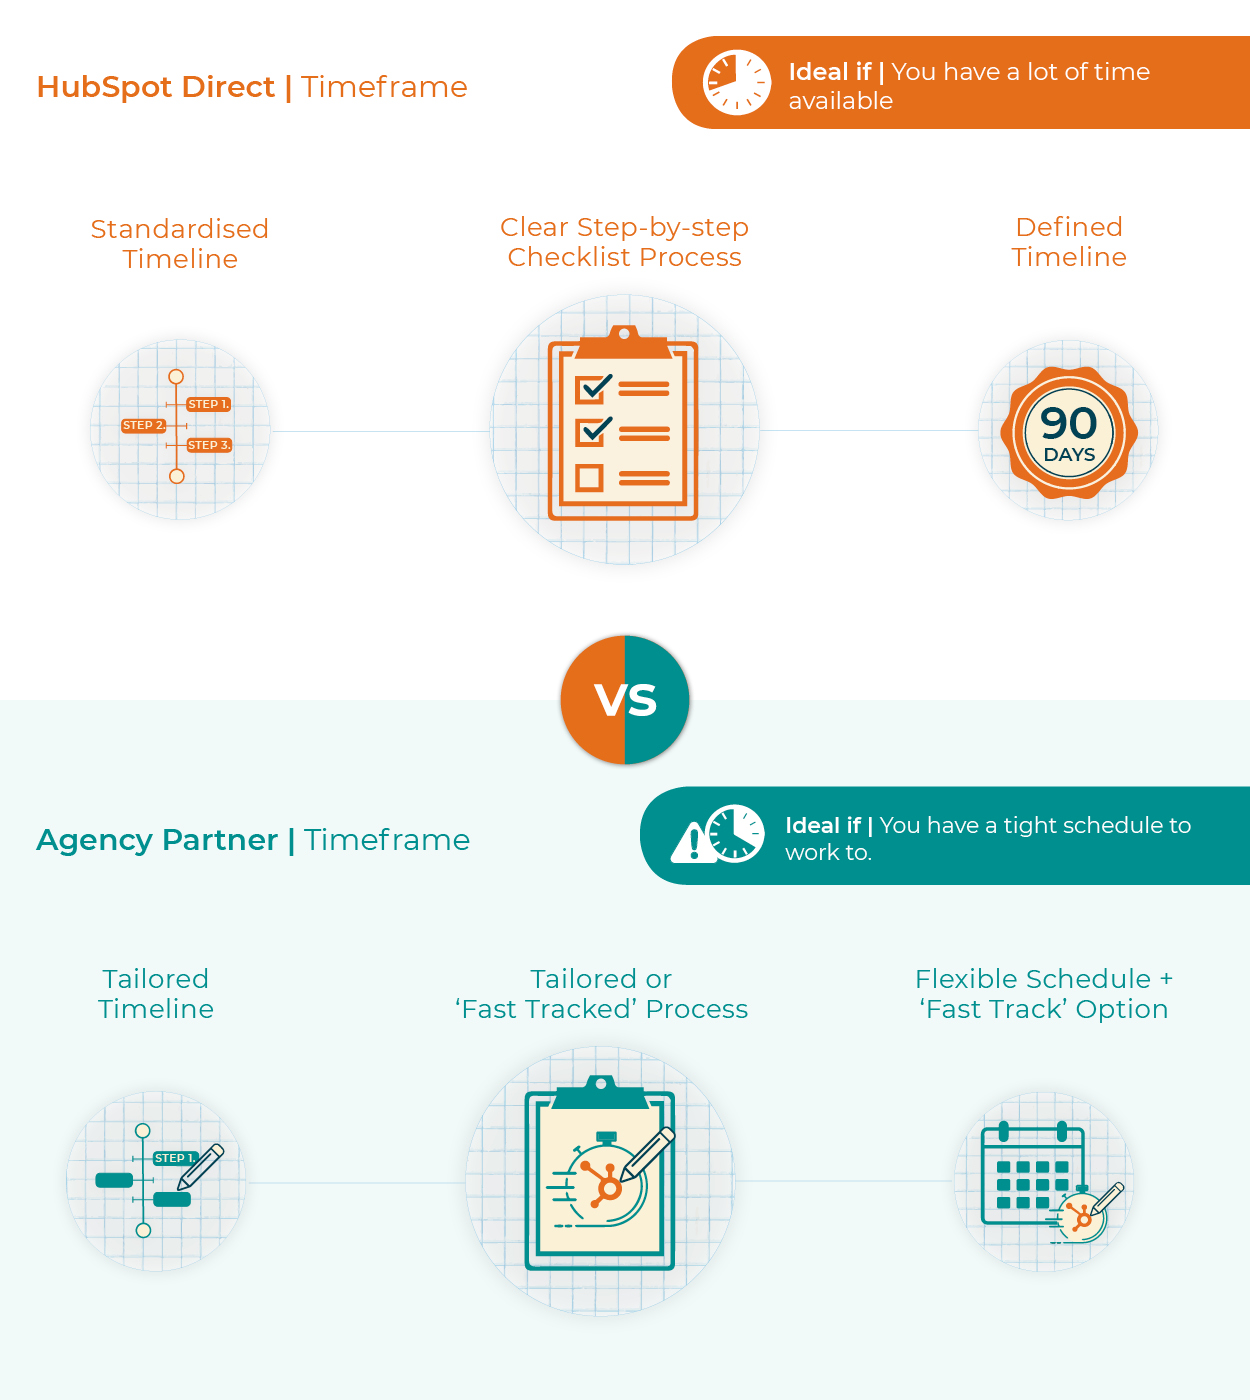 Hubspot Onboarding | Hubspot Direct or Agency Partner? | Timeframes